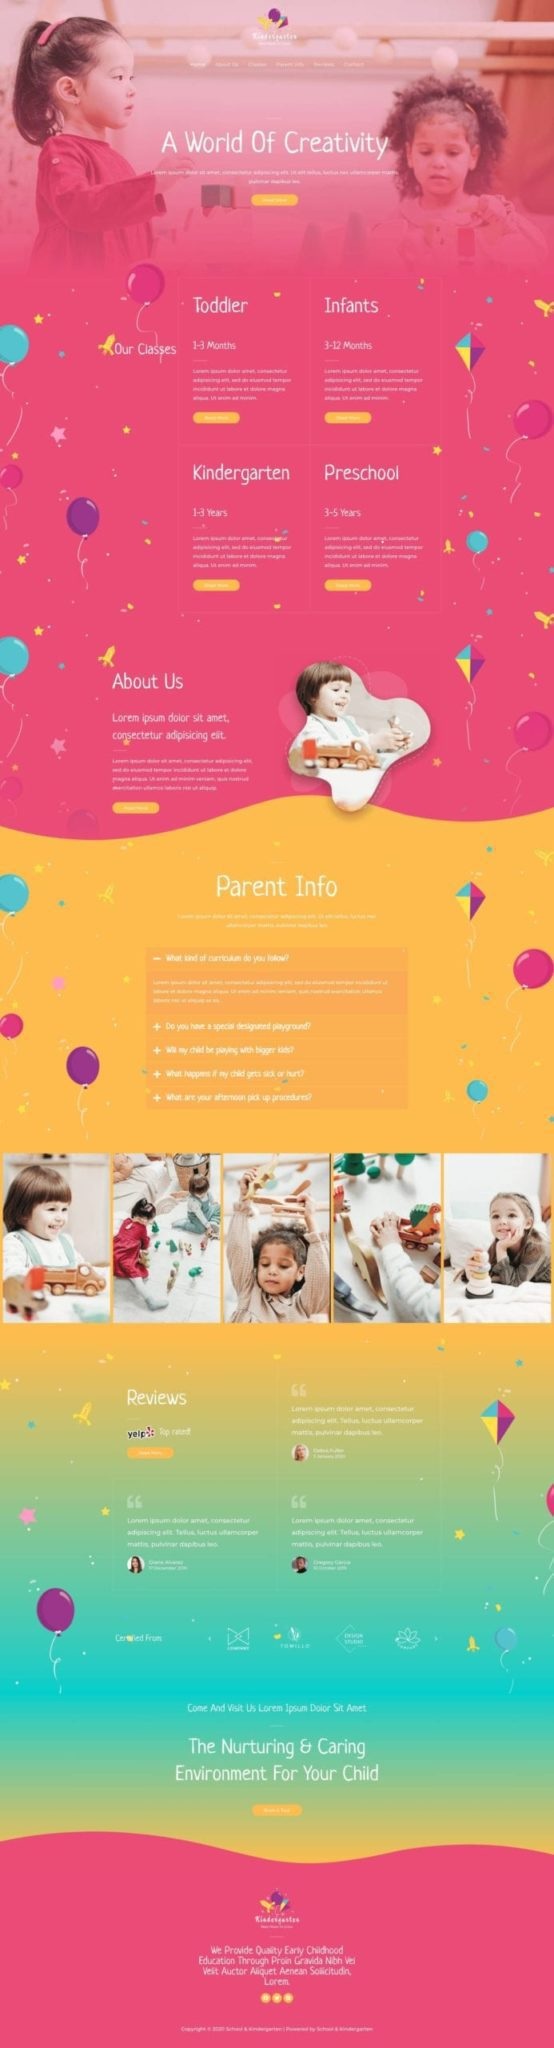 Preview Daycare Site